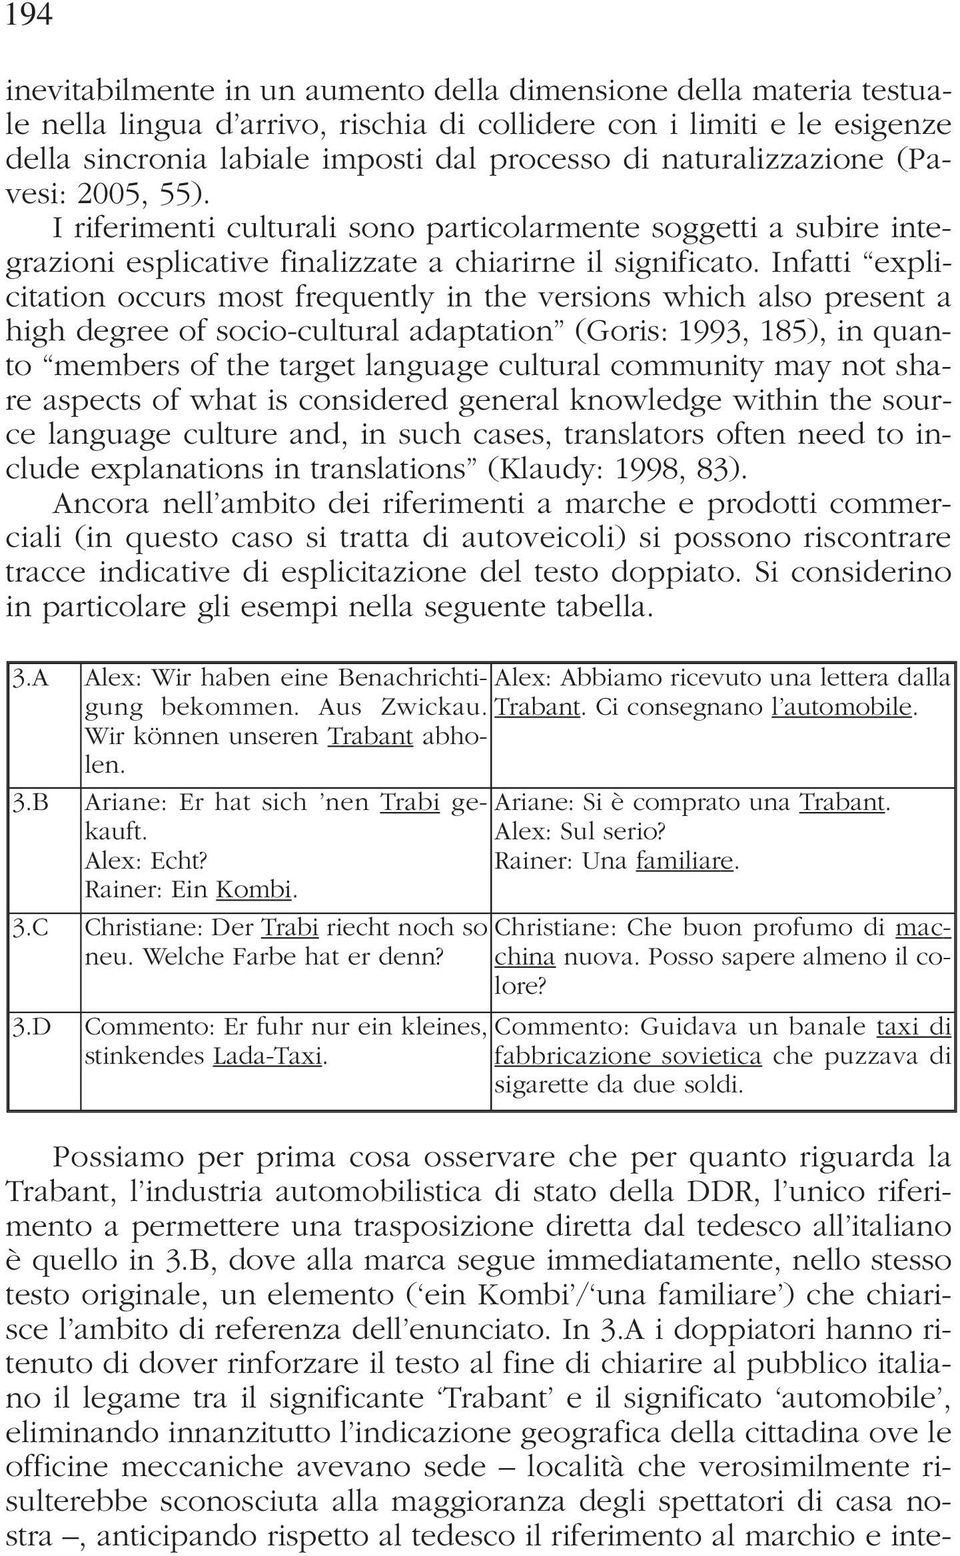 Infatti explicitation occurs most frequently in the versions which also present a high degree of socio-cultural adaptation (Goris: 1993, 185), in quanto members of the target language cultural